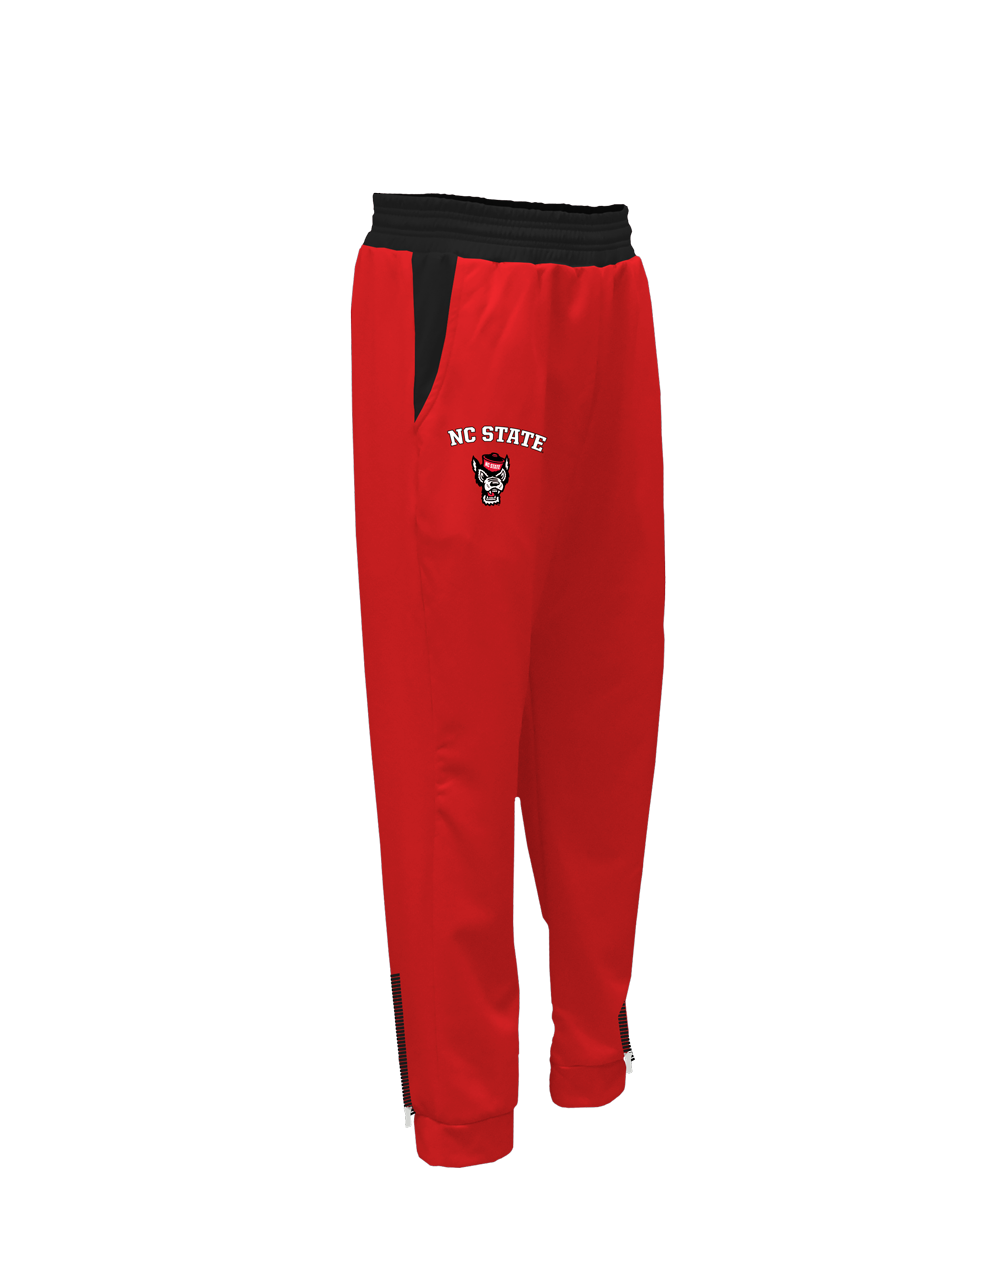 NC State Modern Sublimated Zip Joggers